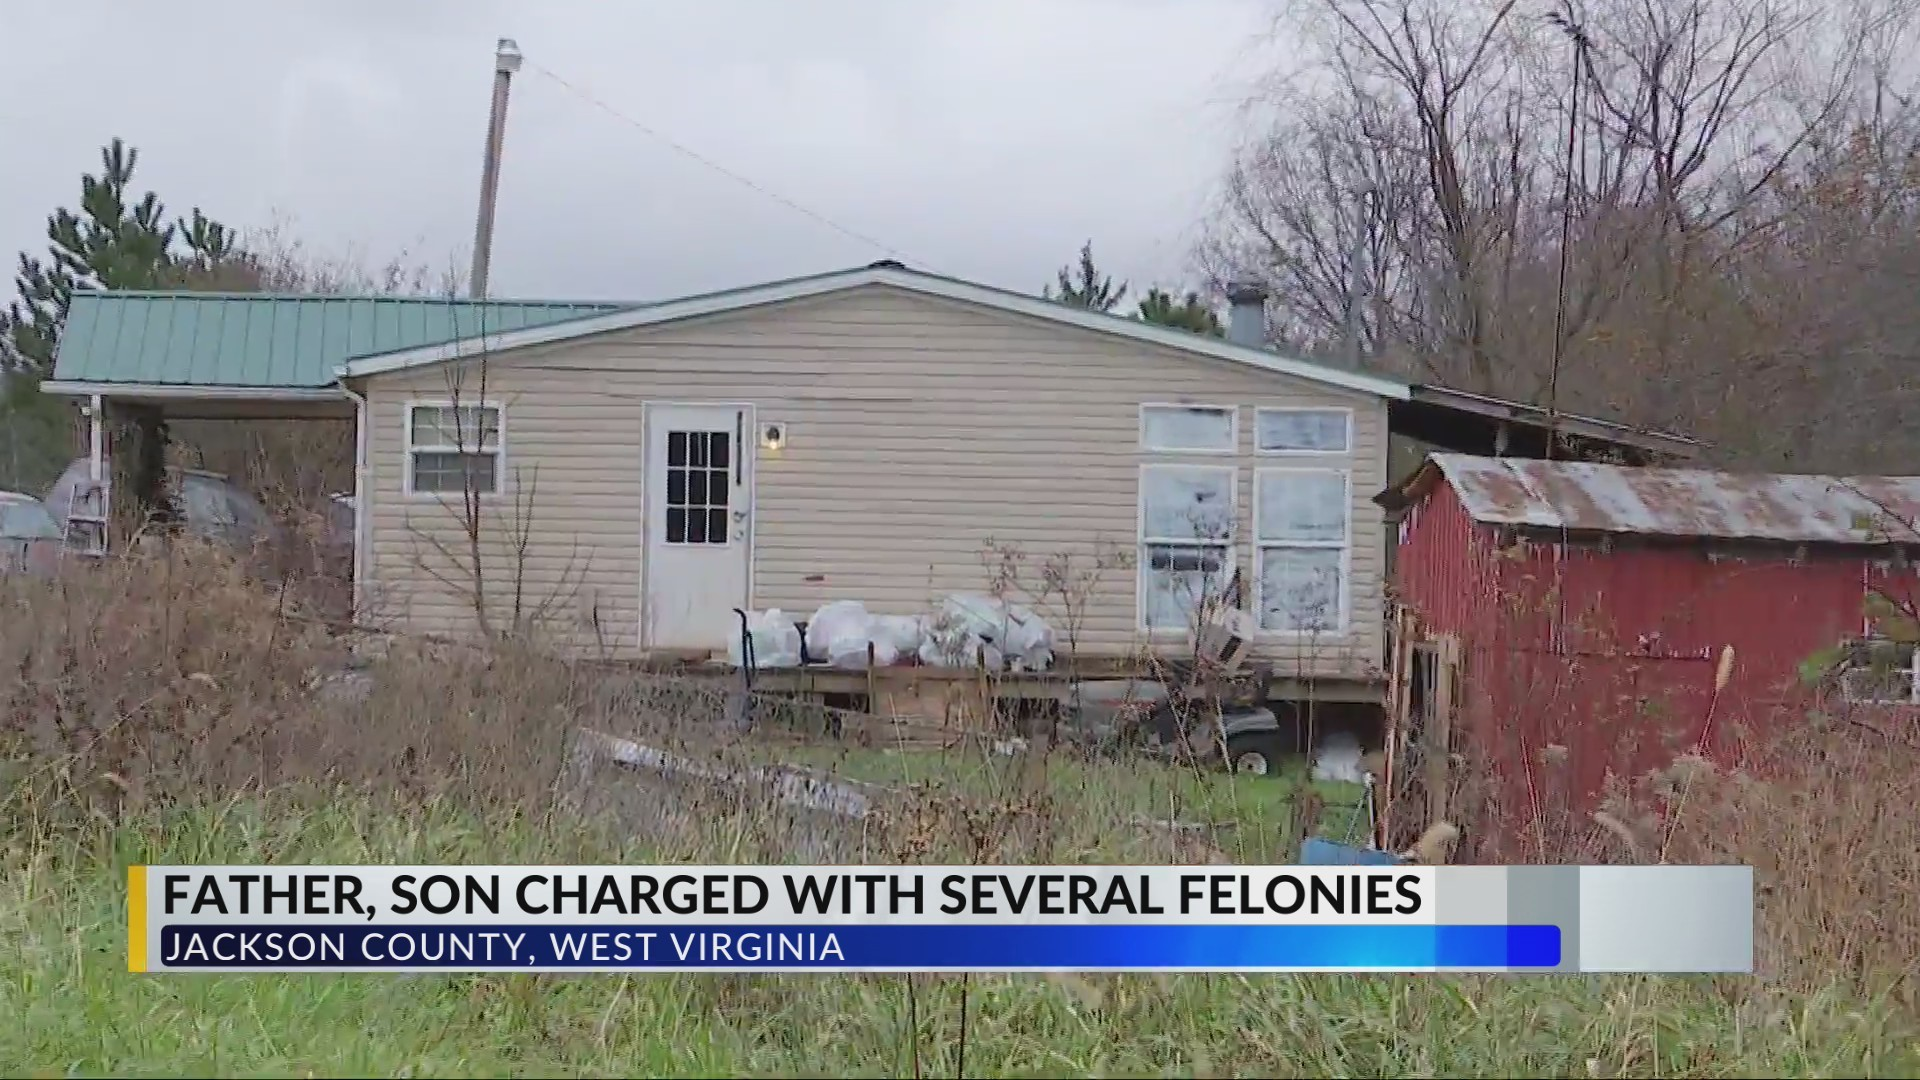 POLICE: Jackson County, WV search warrant yields meth materials, explosive, homemade shotgun